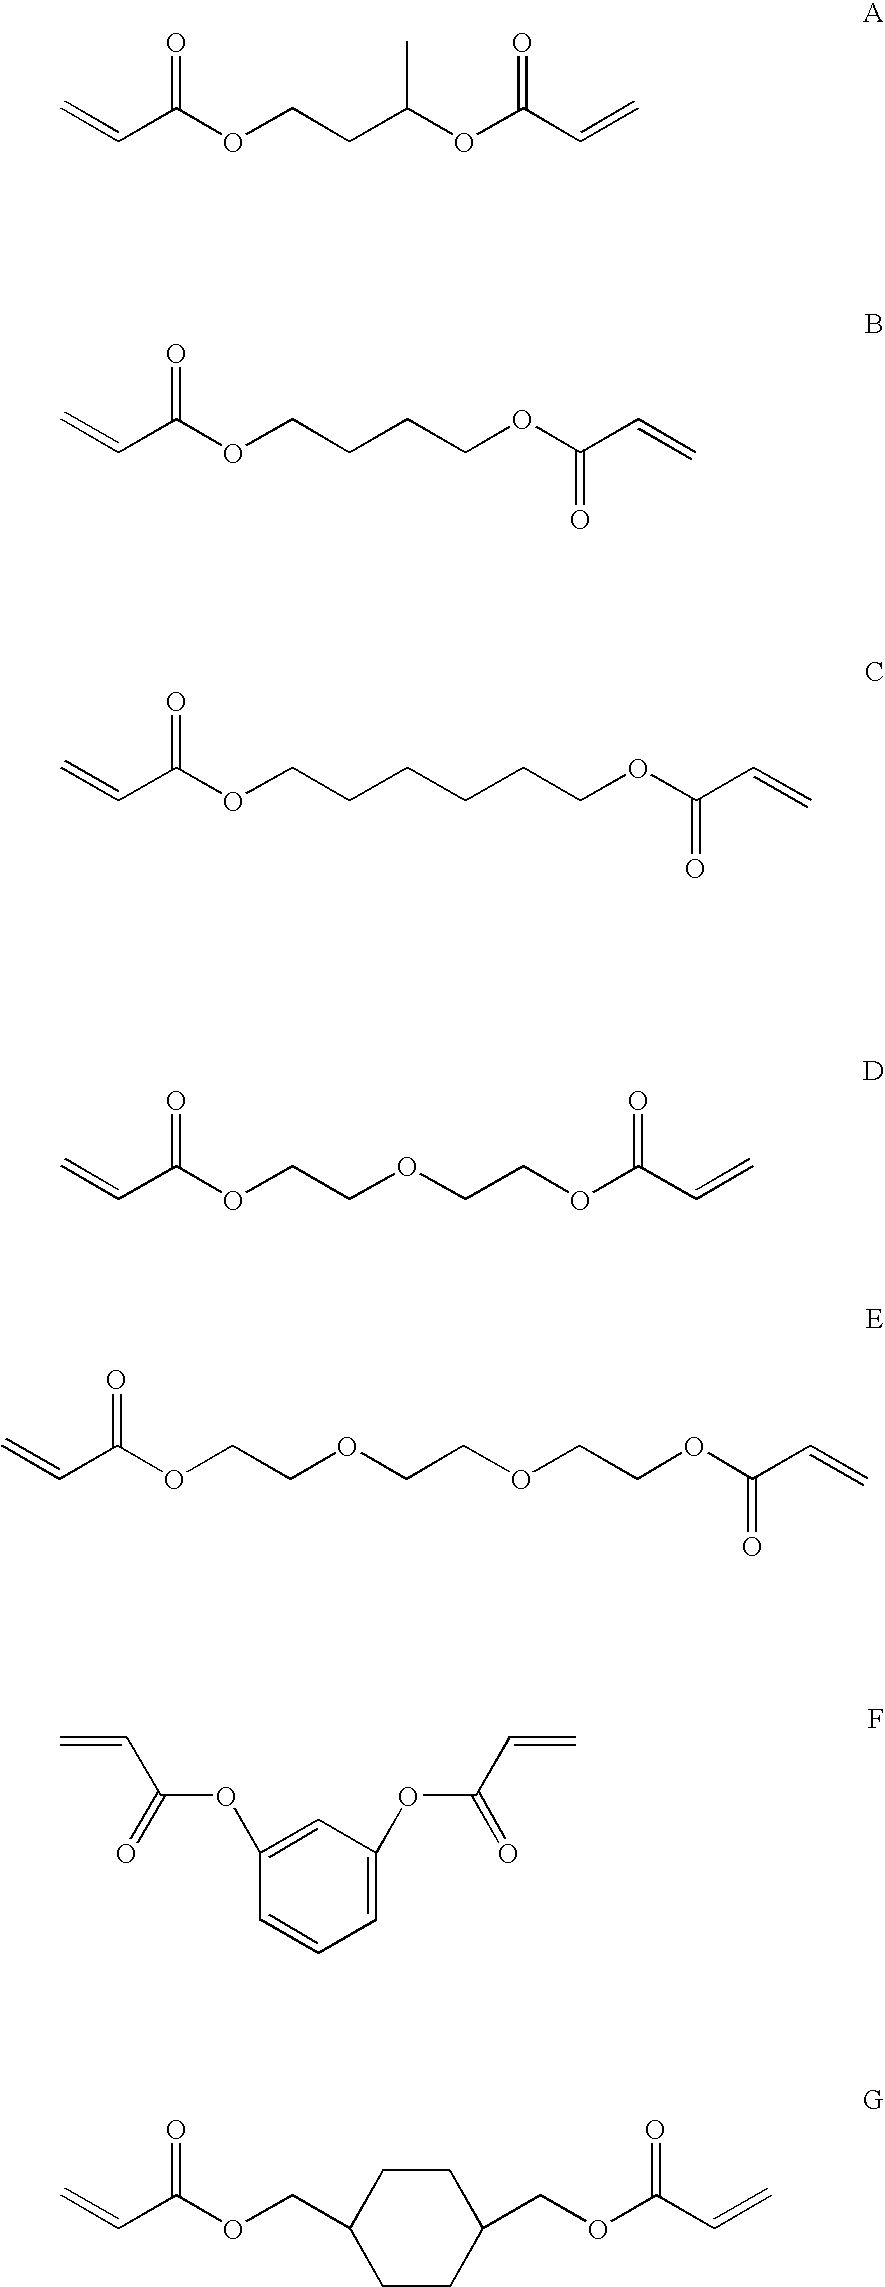 properties of poly b amino ester s Poly(beta-amino esters) are end-modified to form materials useful in the medical as well as non-medical field an amine-terminated poly(beta-amino ester) is reacted with an electrophile, or an acrylate-terminated poly(beta-amino ester) is reacted with a nucleophile.